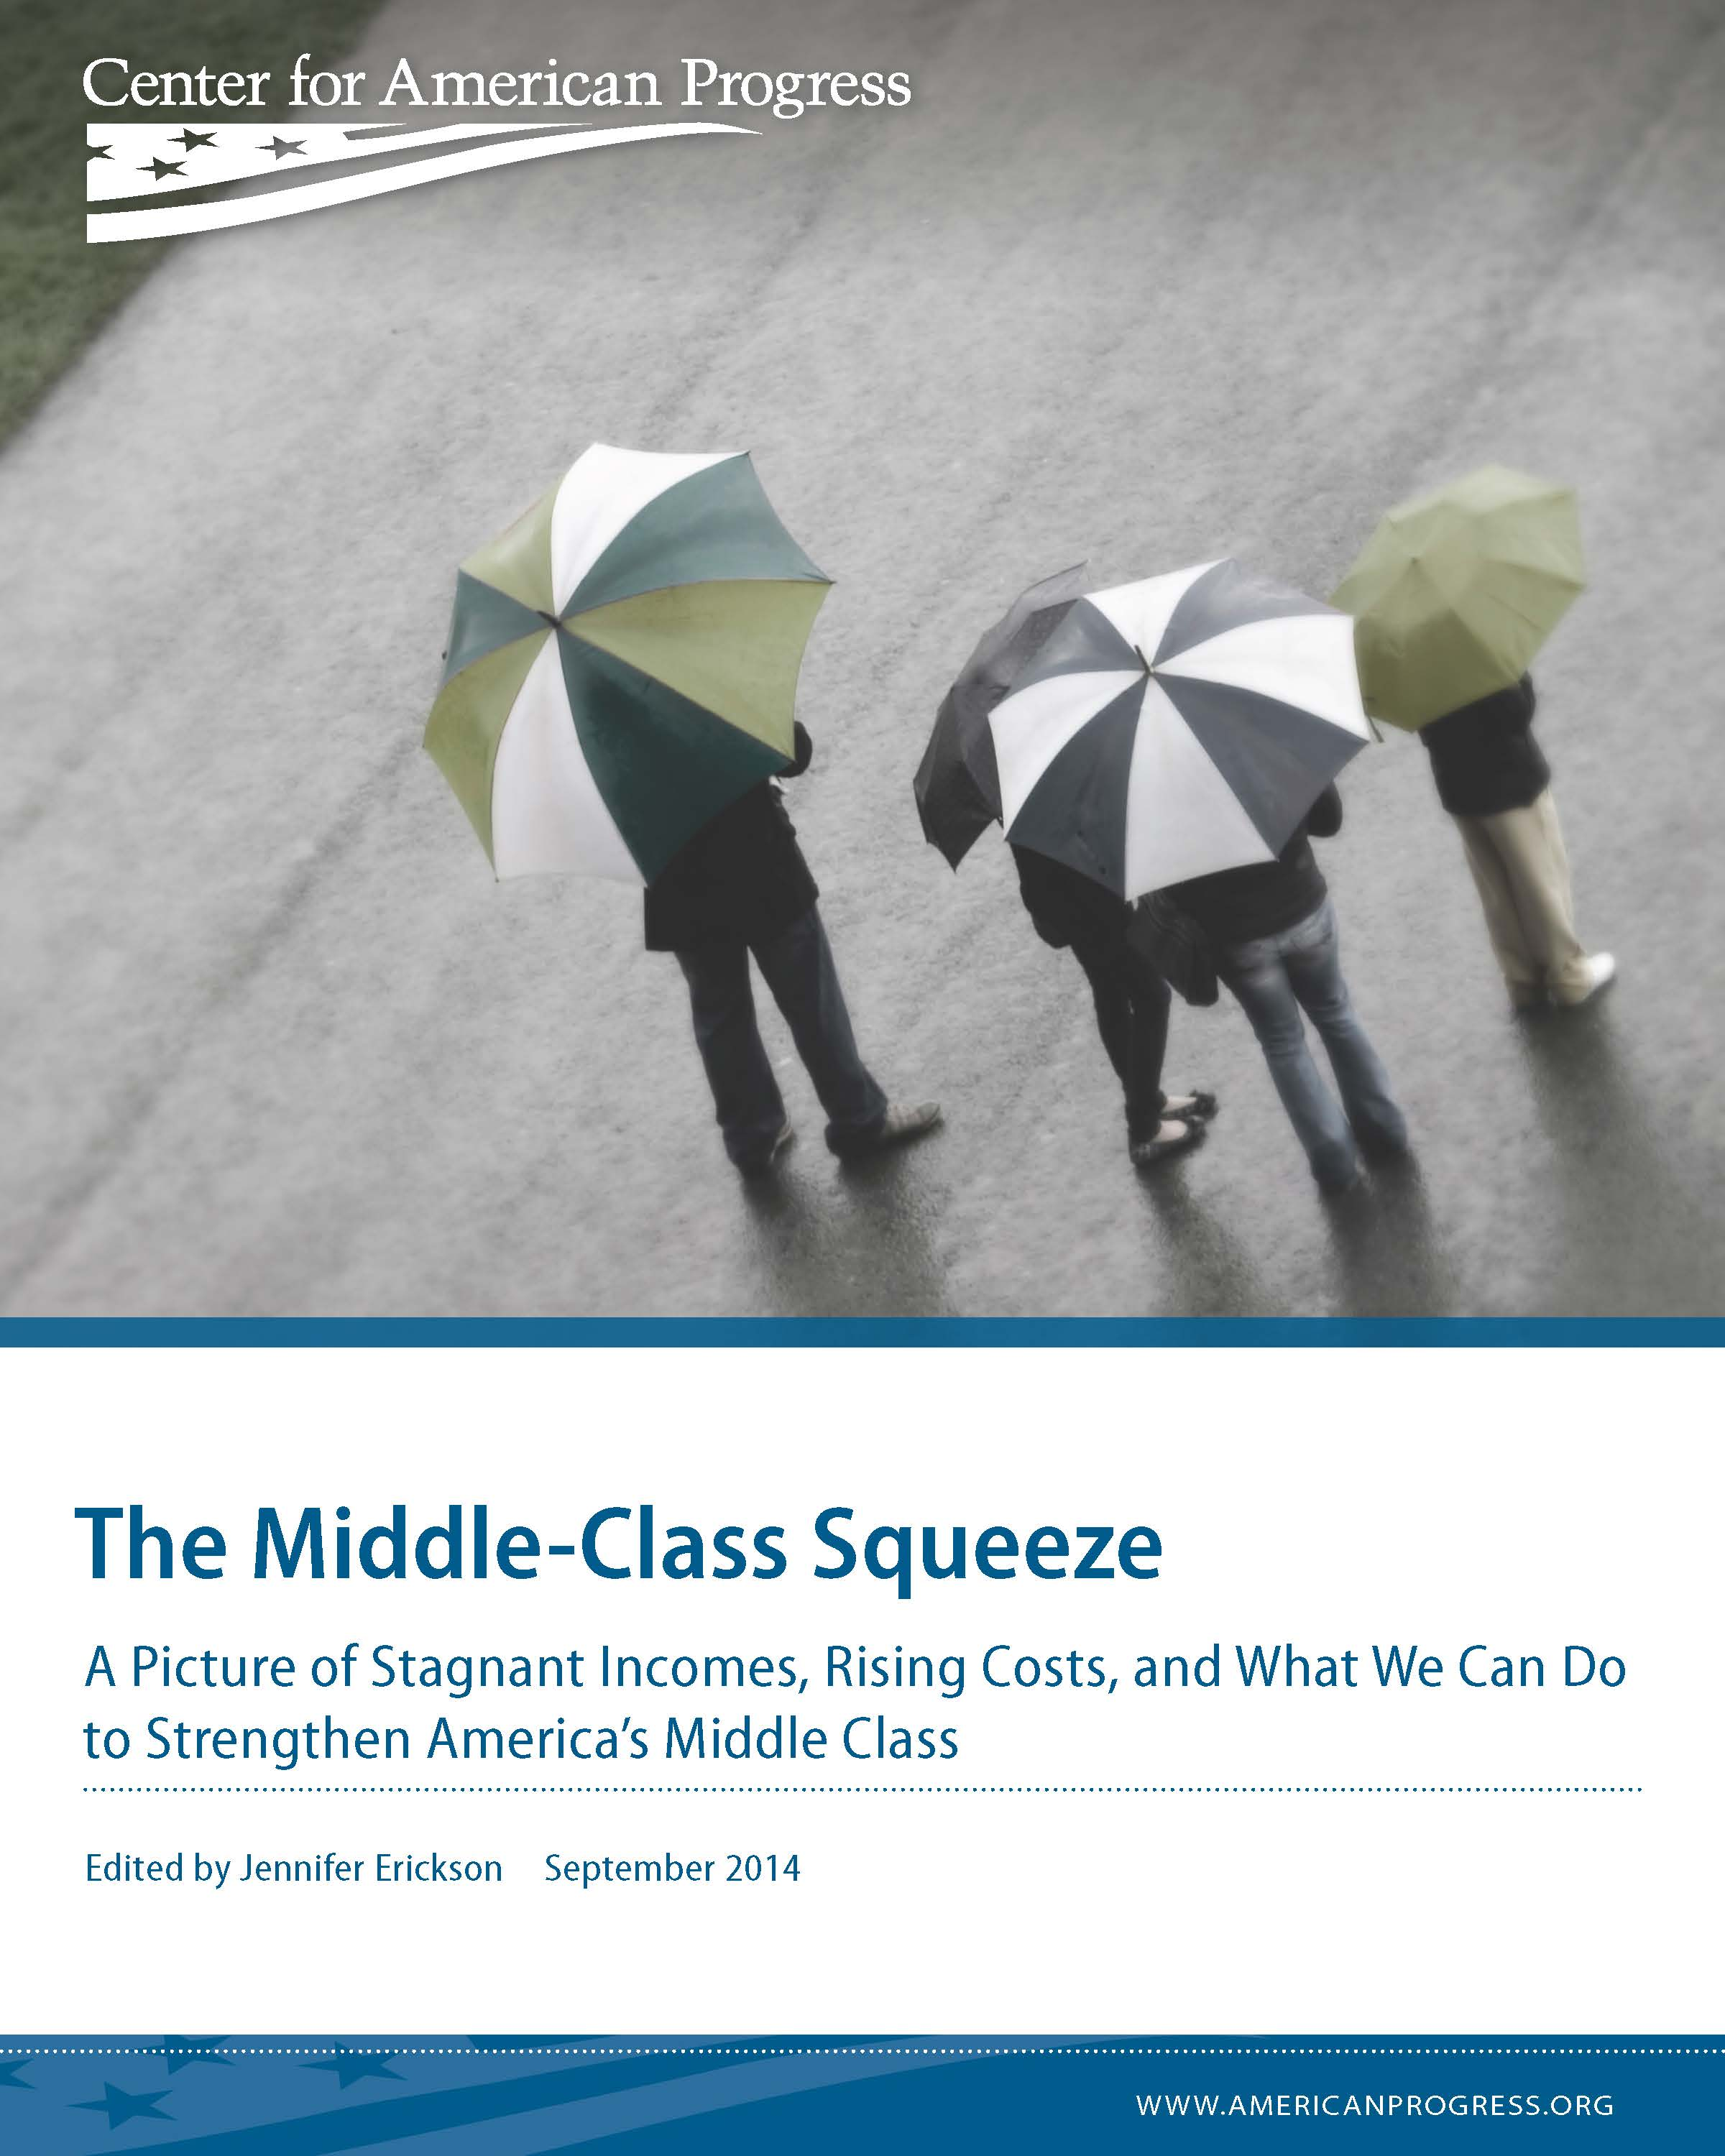 The Middle-Class Squeeze